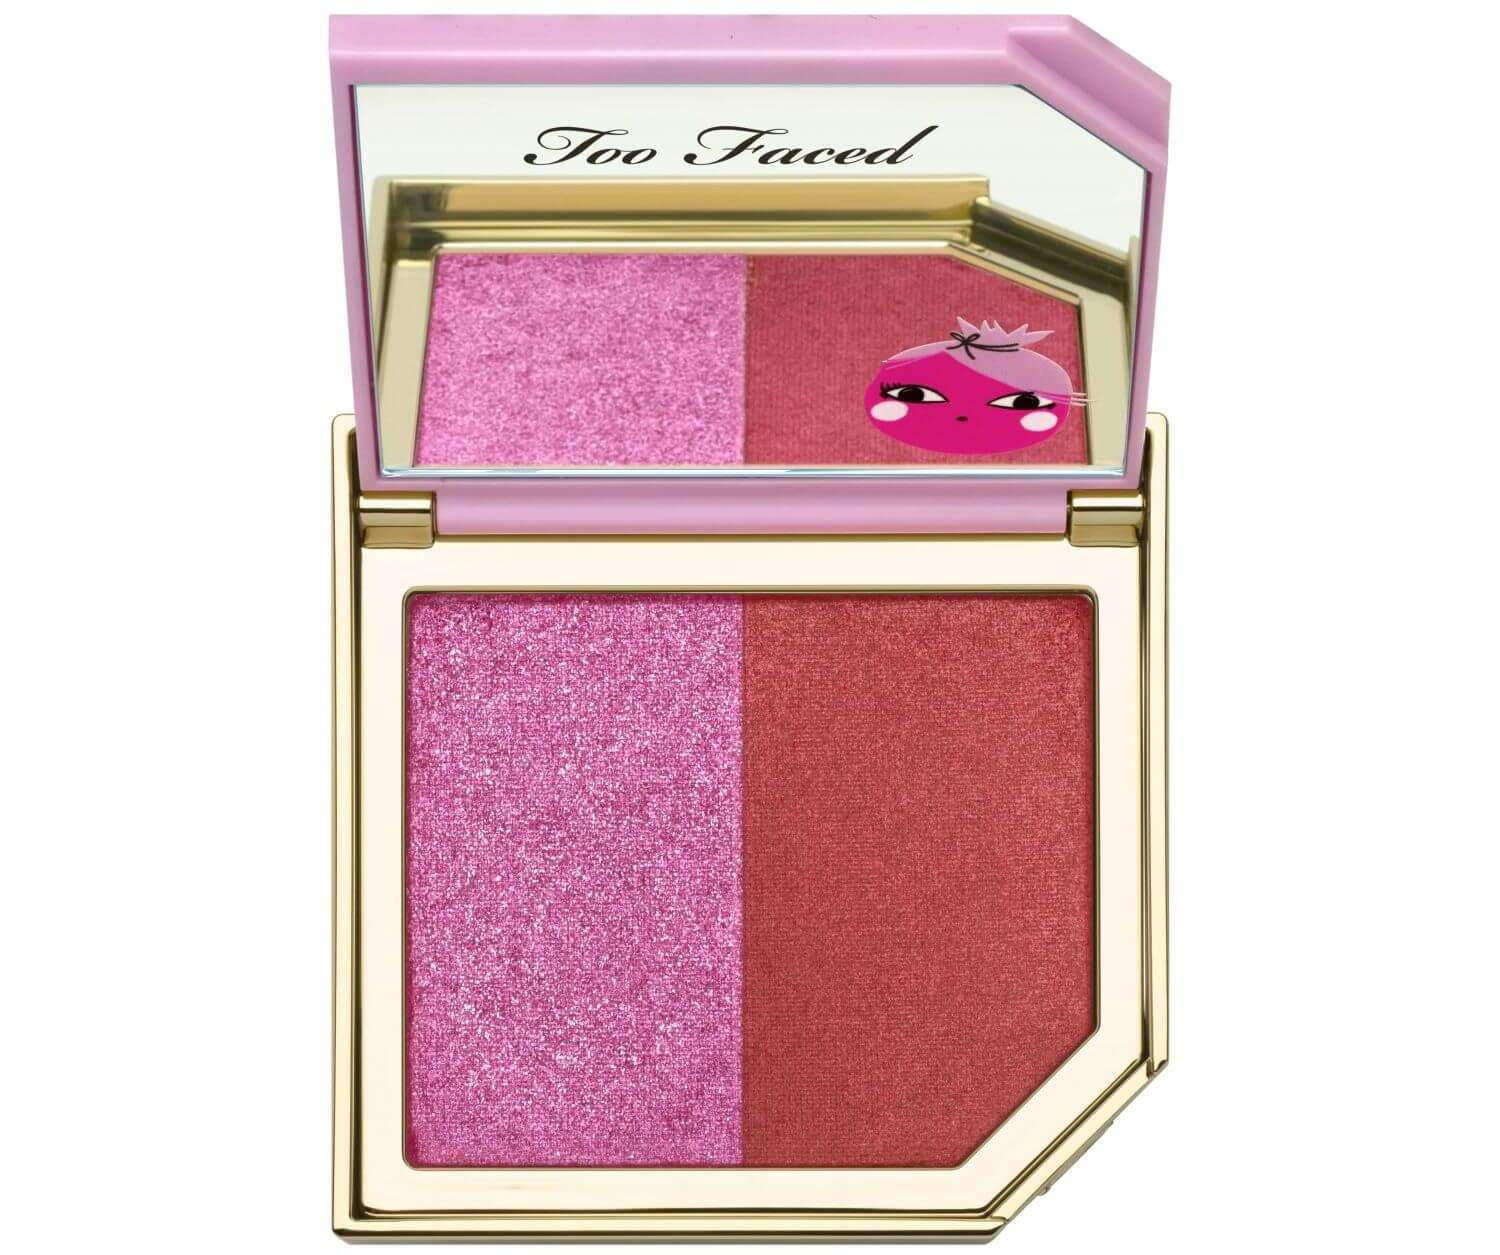 revue-collection-tutti-frutti-too-faced-blush-fruit-cocktail-strobeberry-sephora-france-makeupbyazadig-swatch-avis-prix-rose-Plumagranate